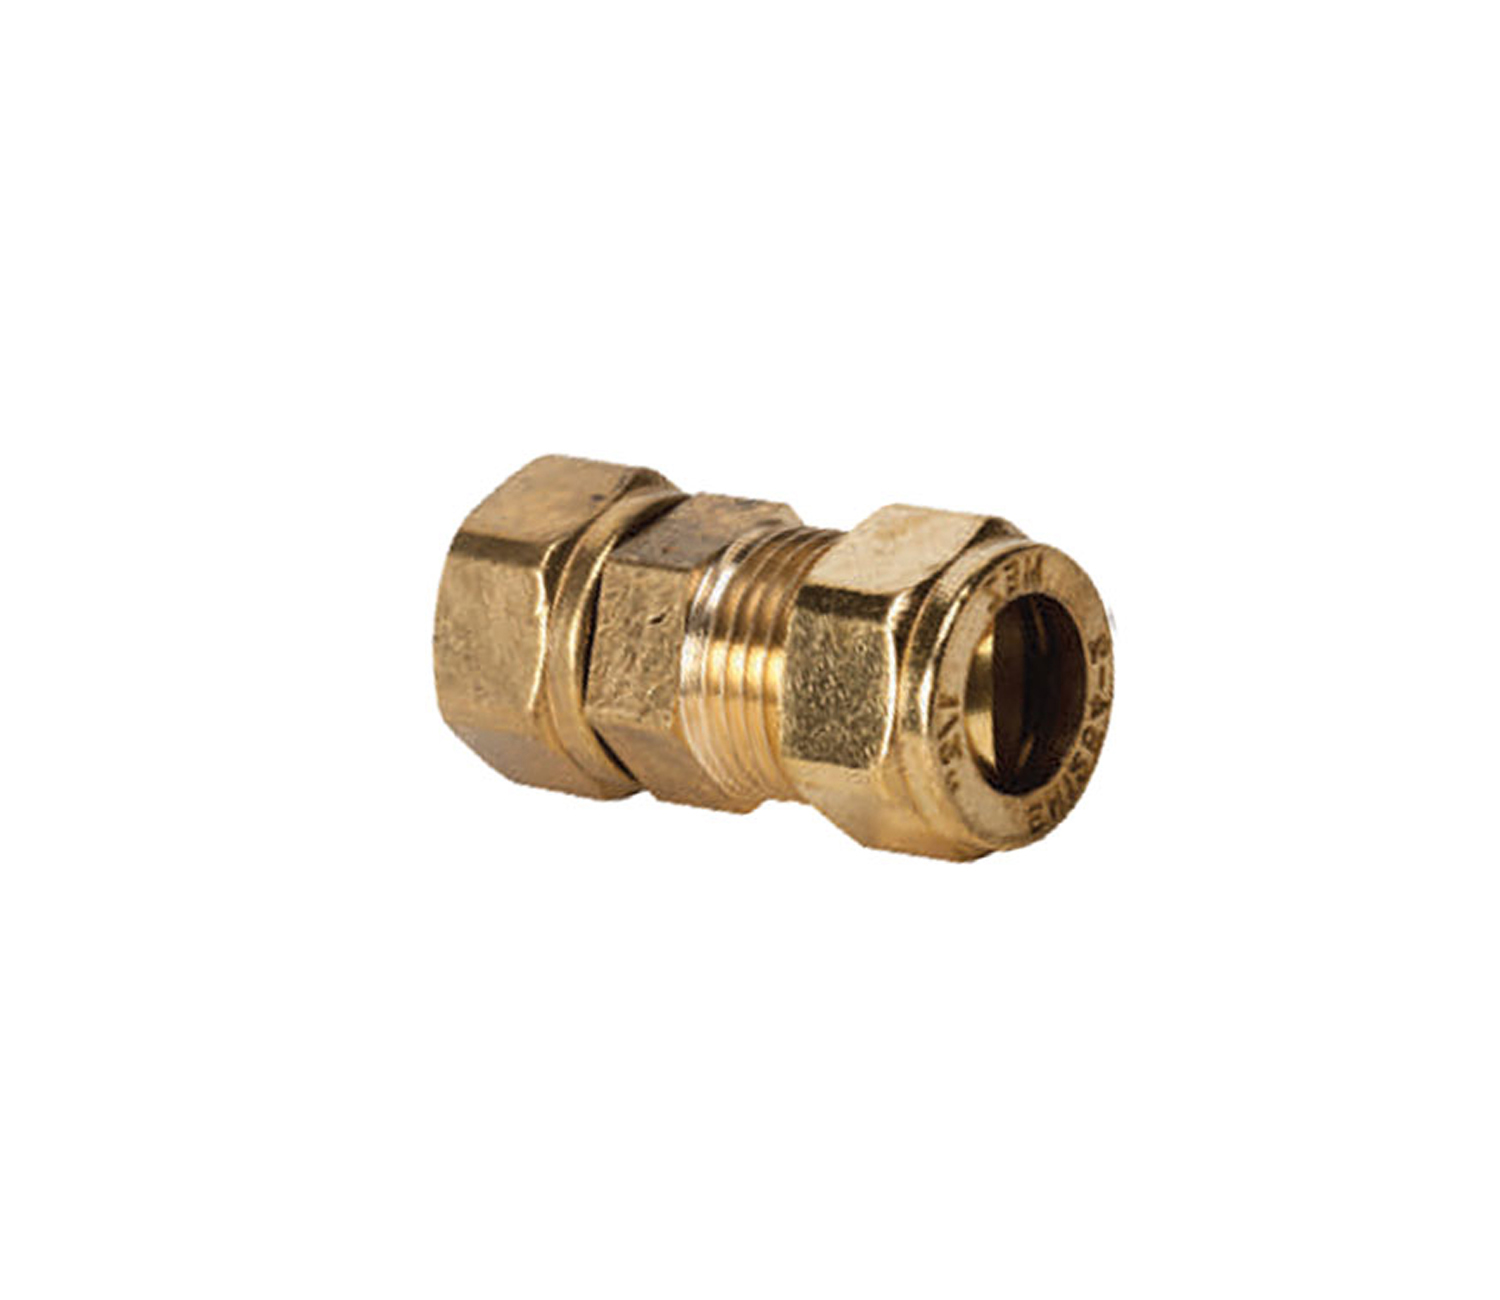 Straight Compression Swivel Coupler FI × C (3141)